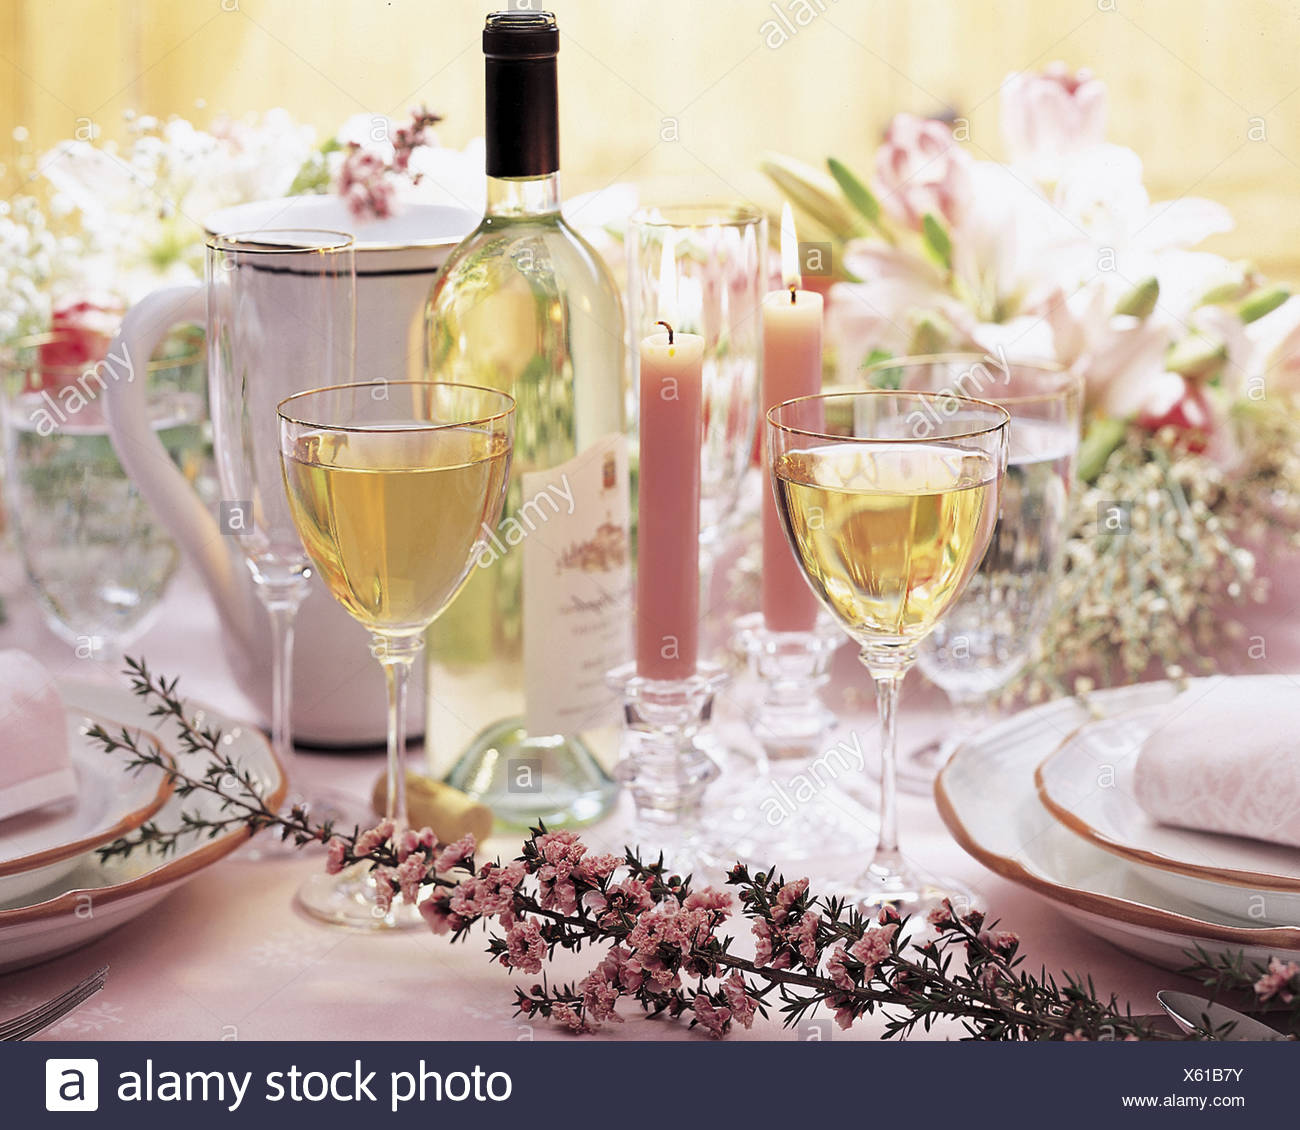 Formal table with white wine candles and flowers stock photo formal table with white wine candles and flowers mightylinksfo